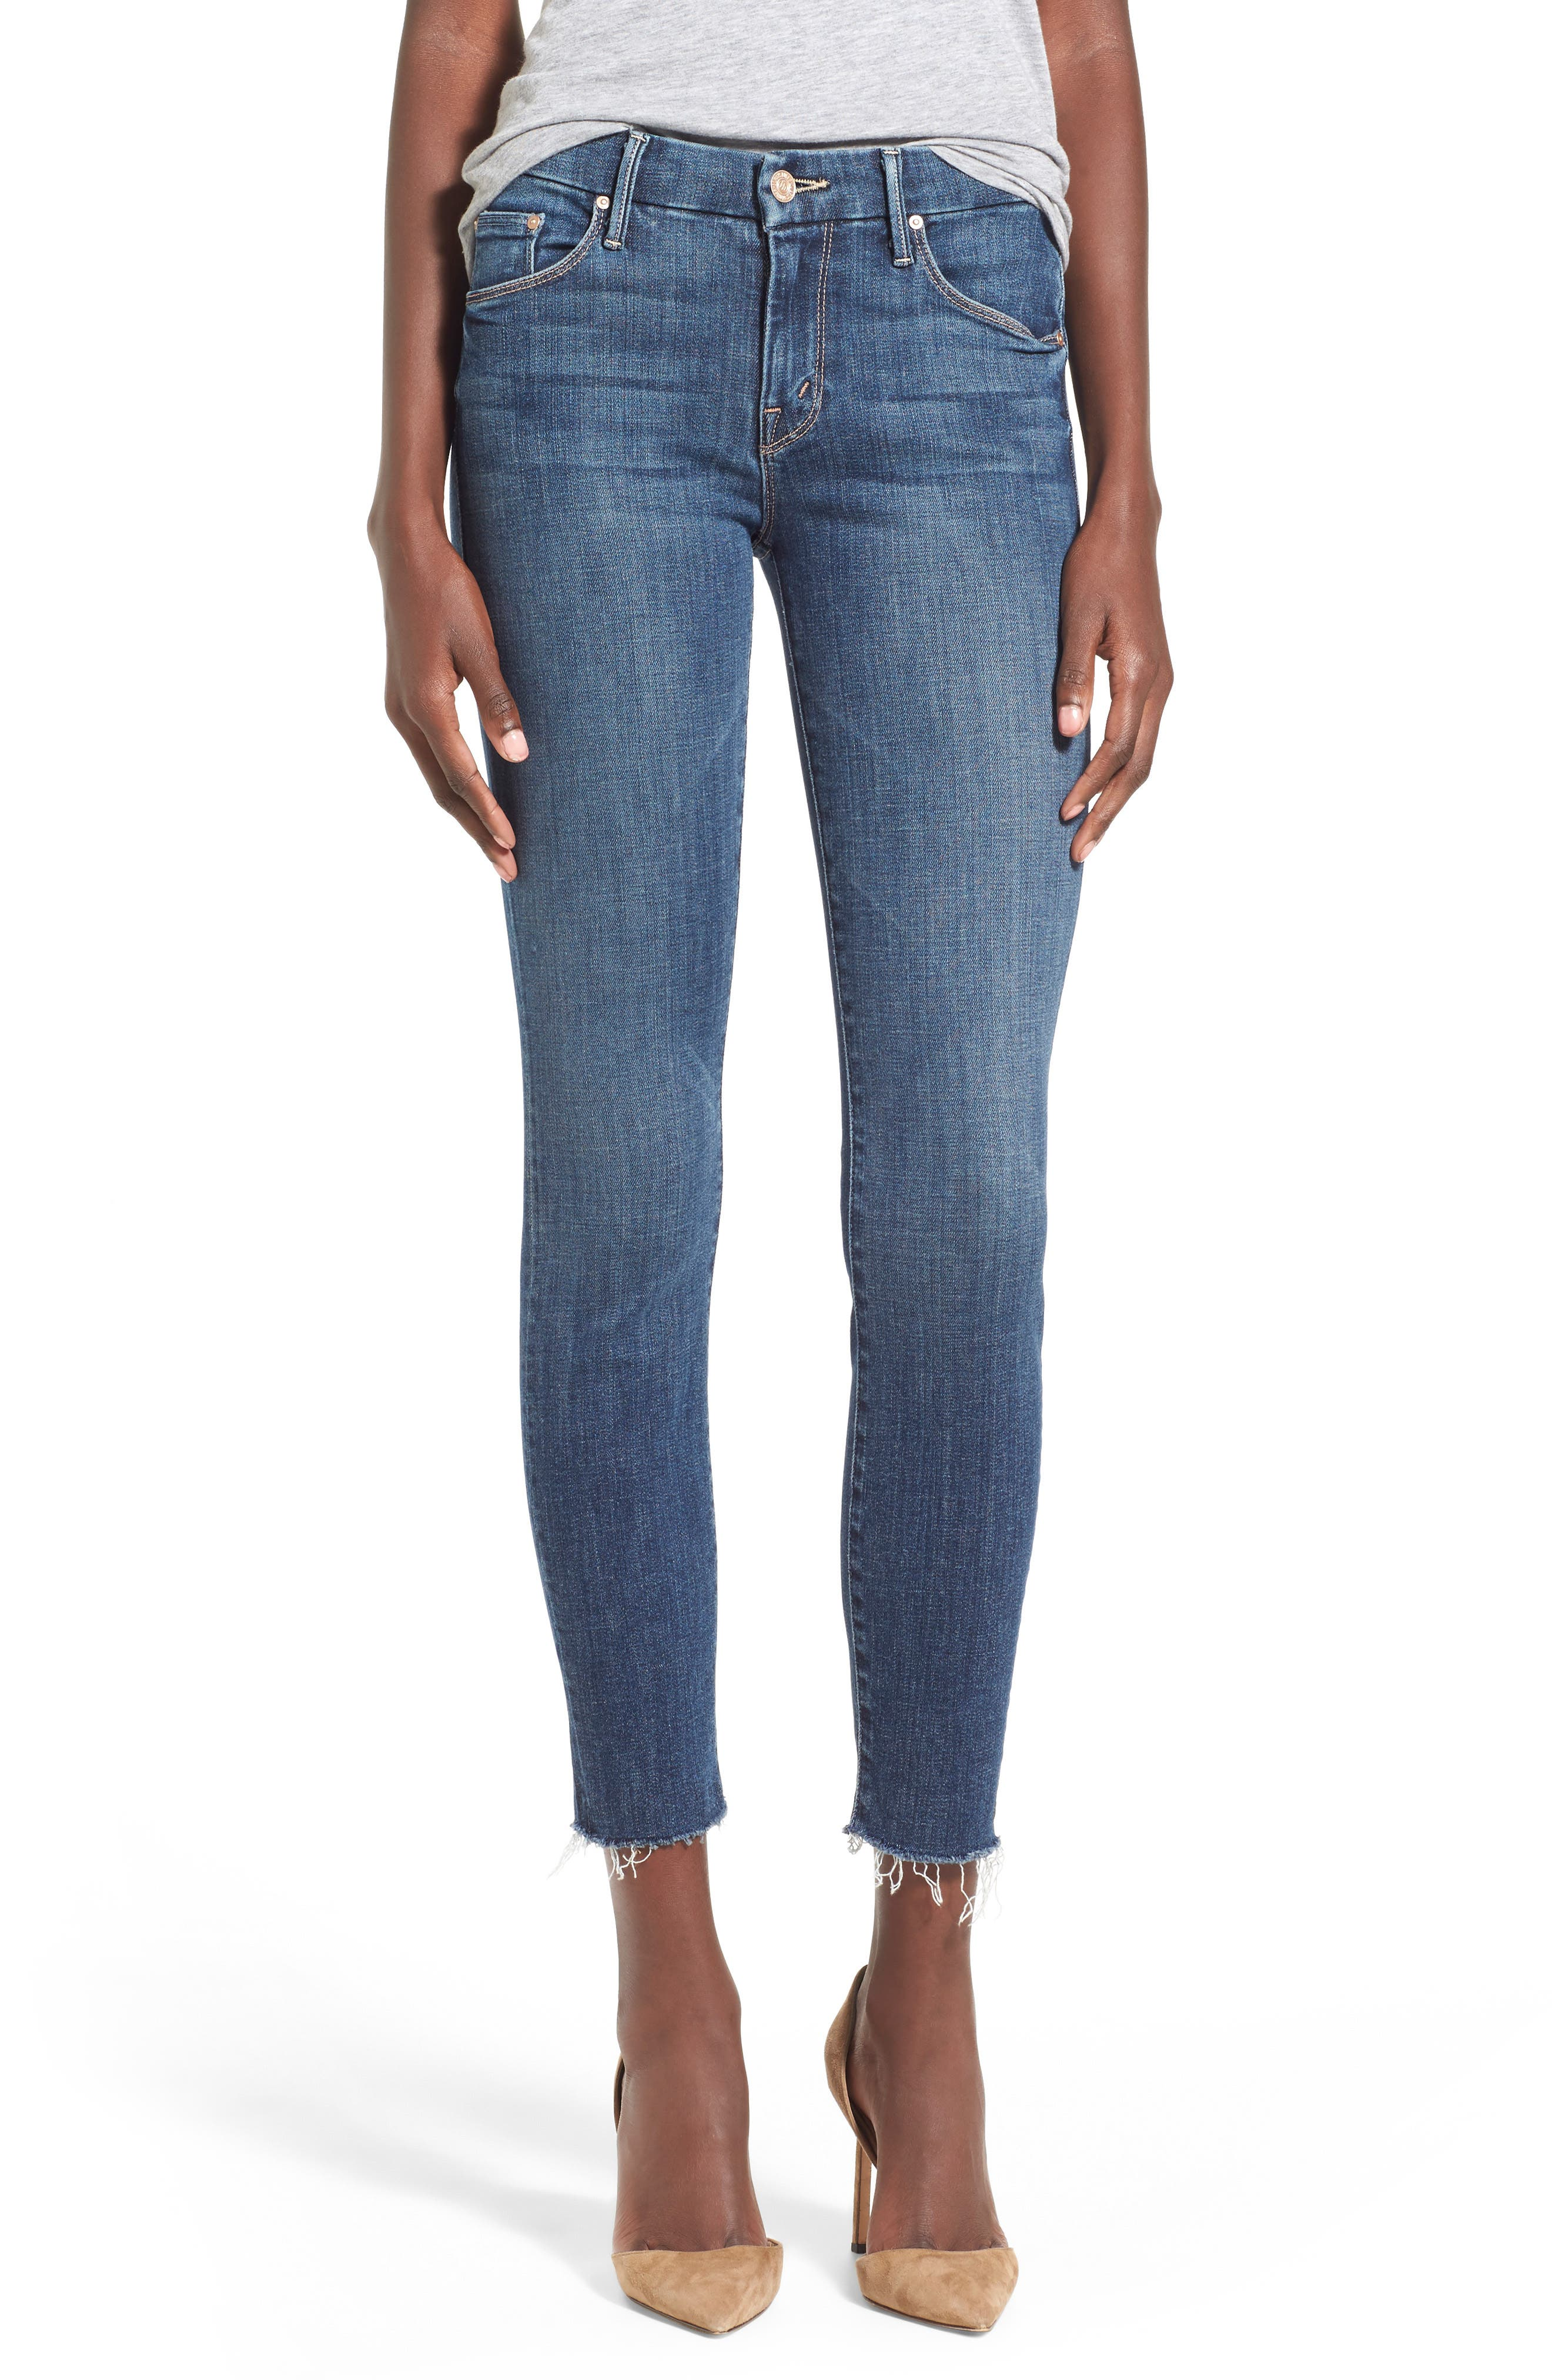 MOTHER, 'TheLooker'Frayed Ankle Jeans, Main thumbnail 1, color, 417